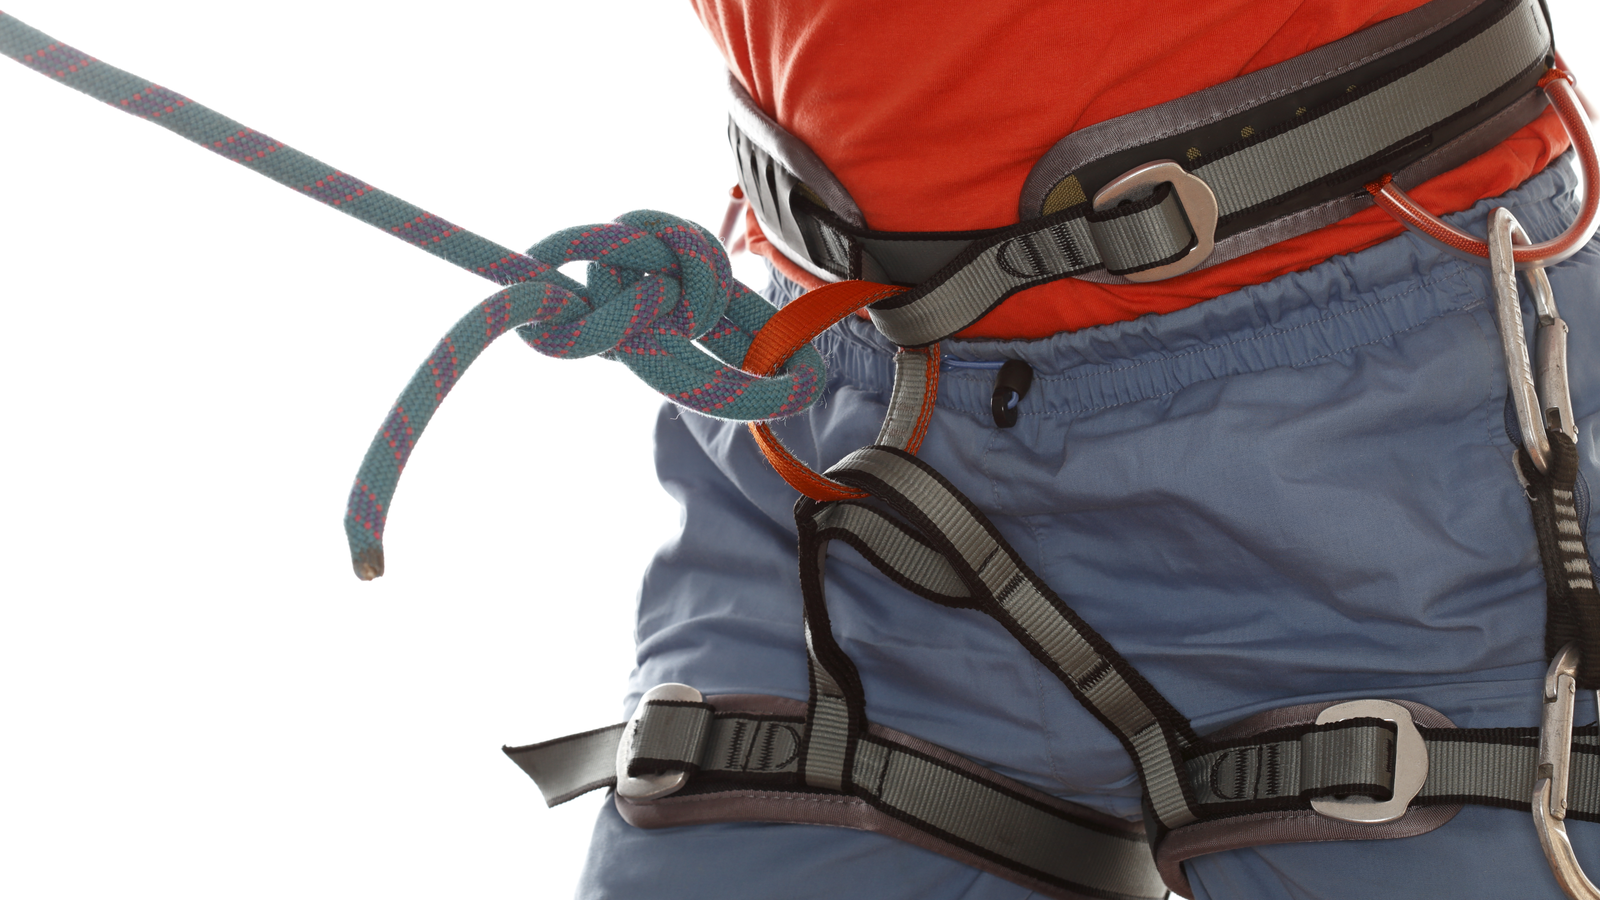 Person wearing a climbing harness that is attached to a rope.